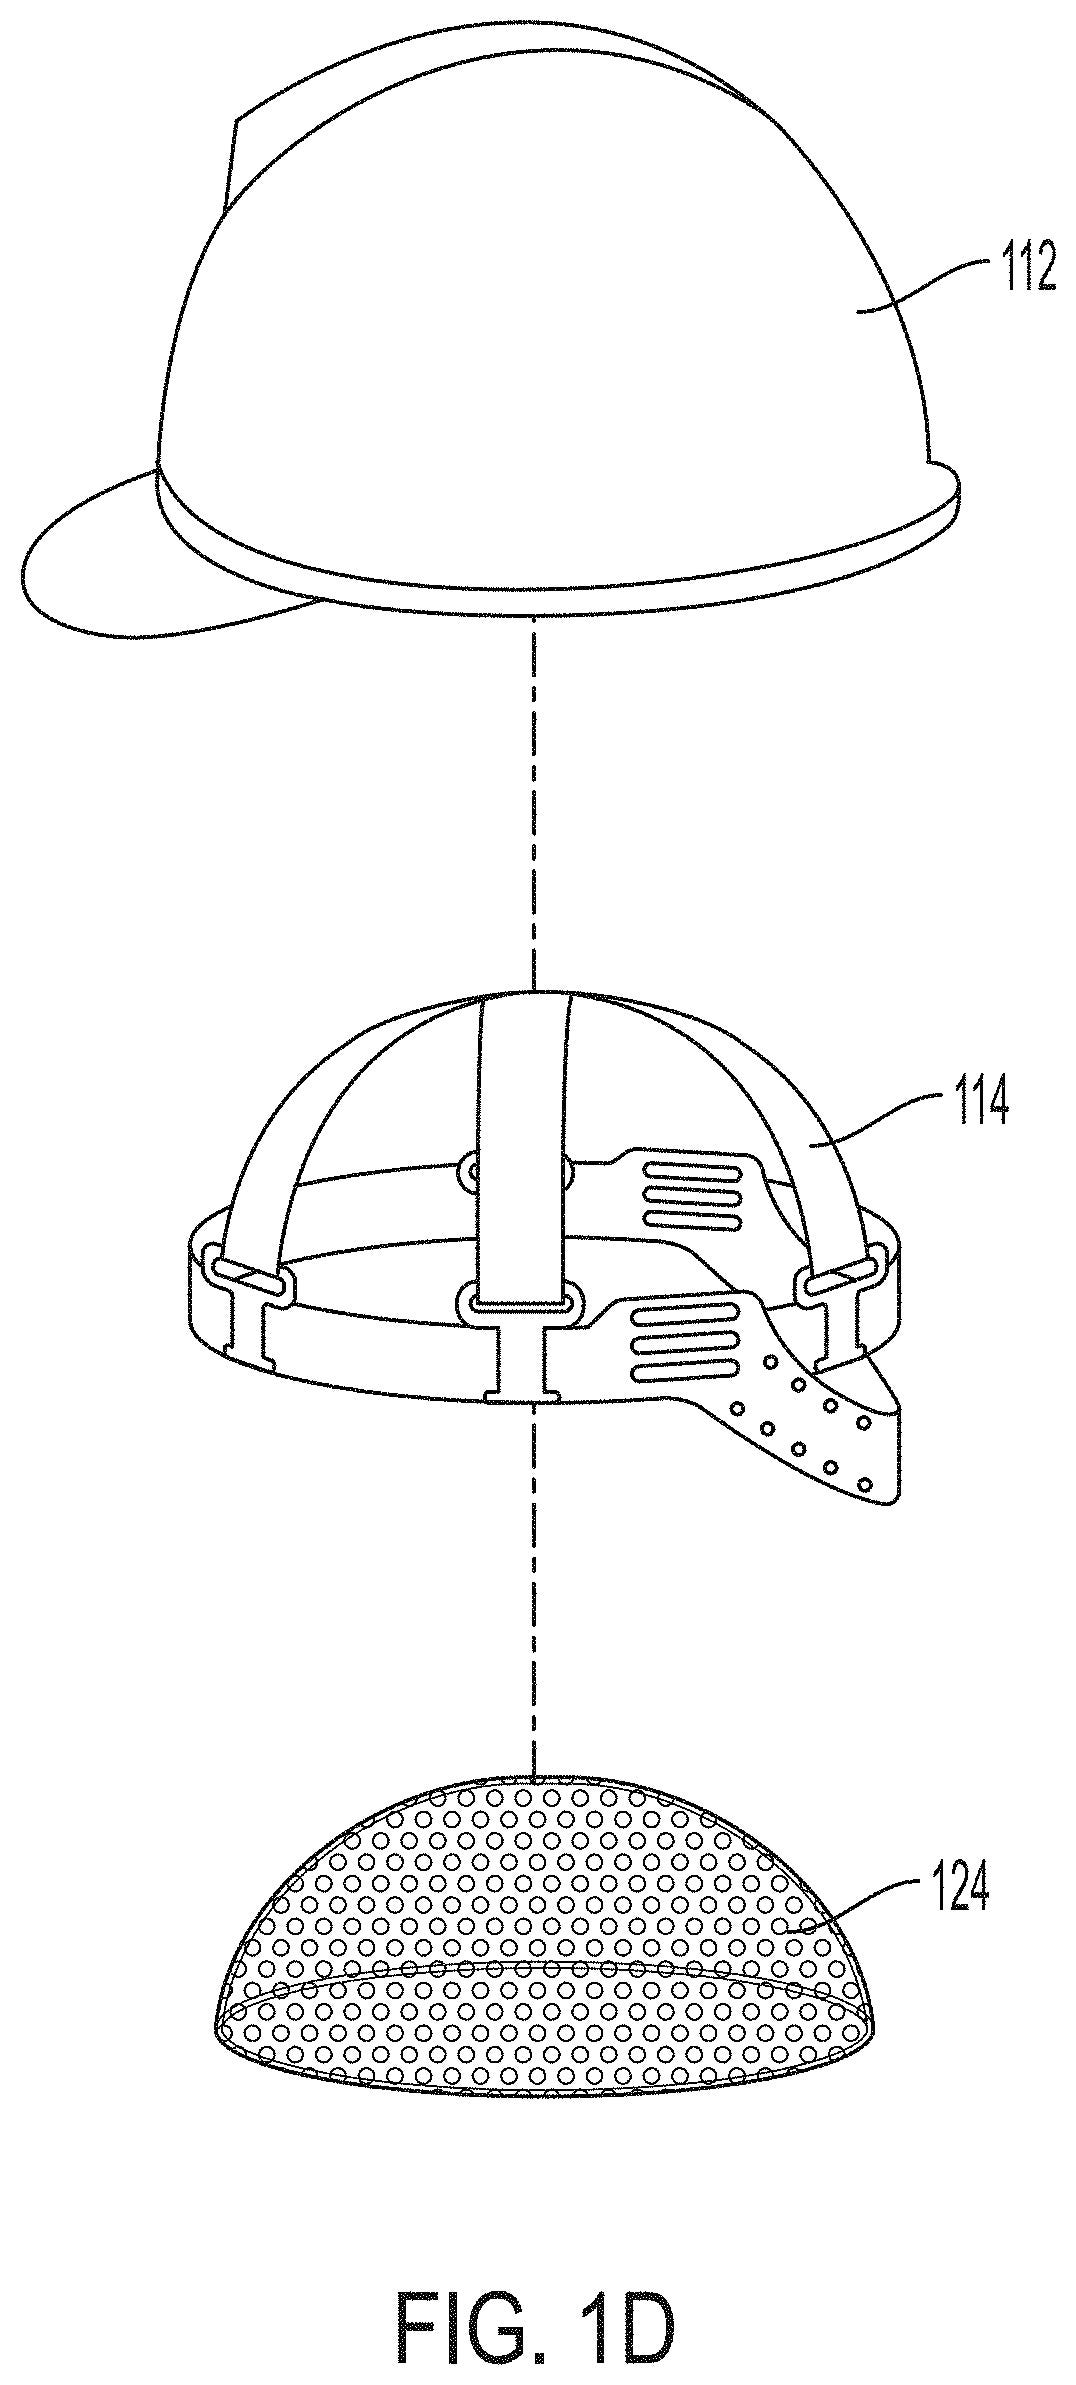 Image of the helmet with the air bubble cushioning.